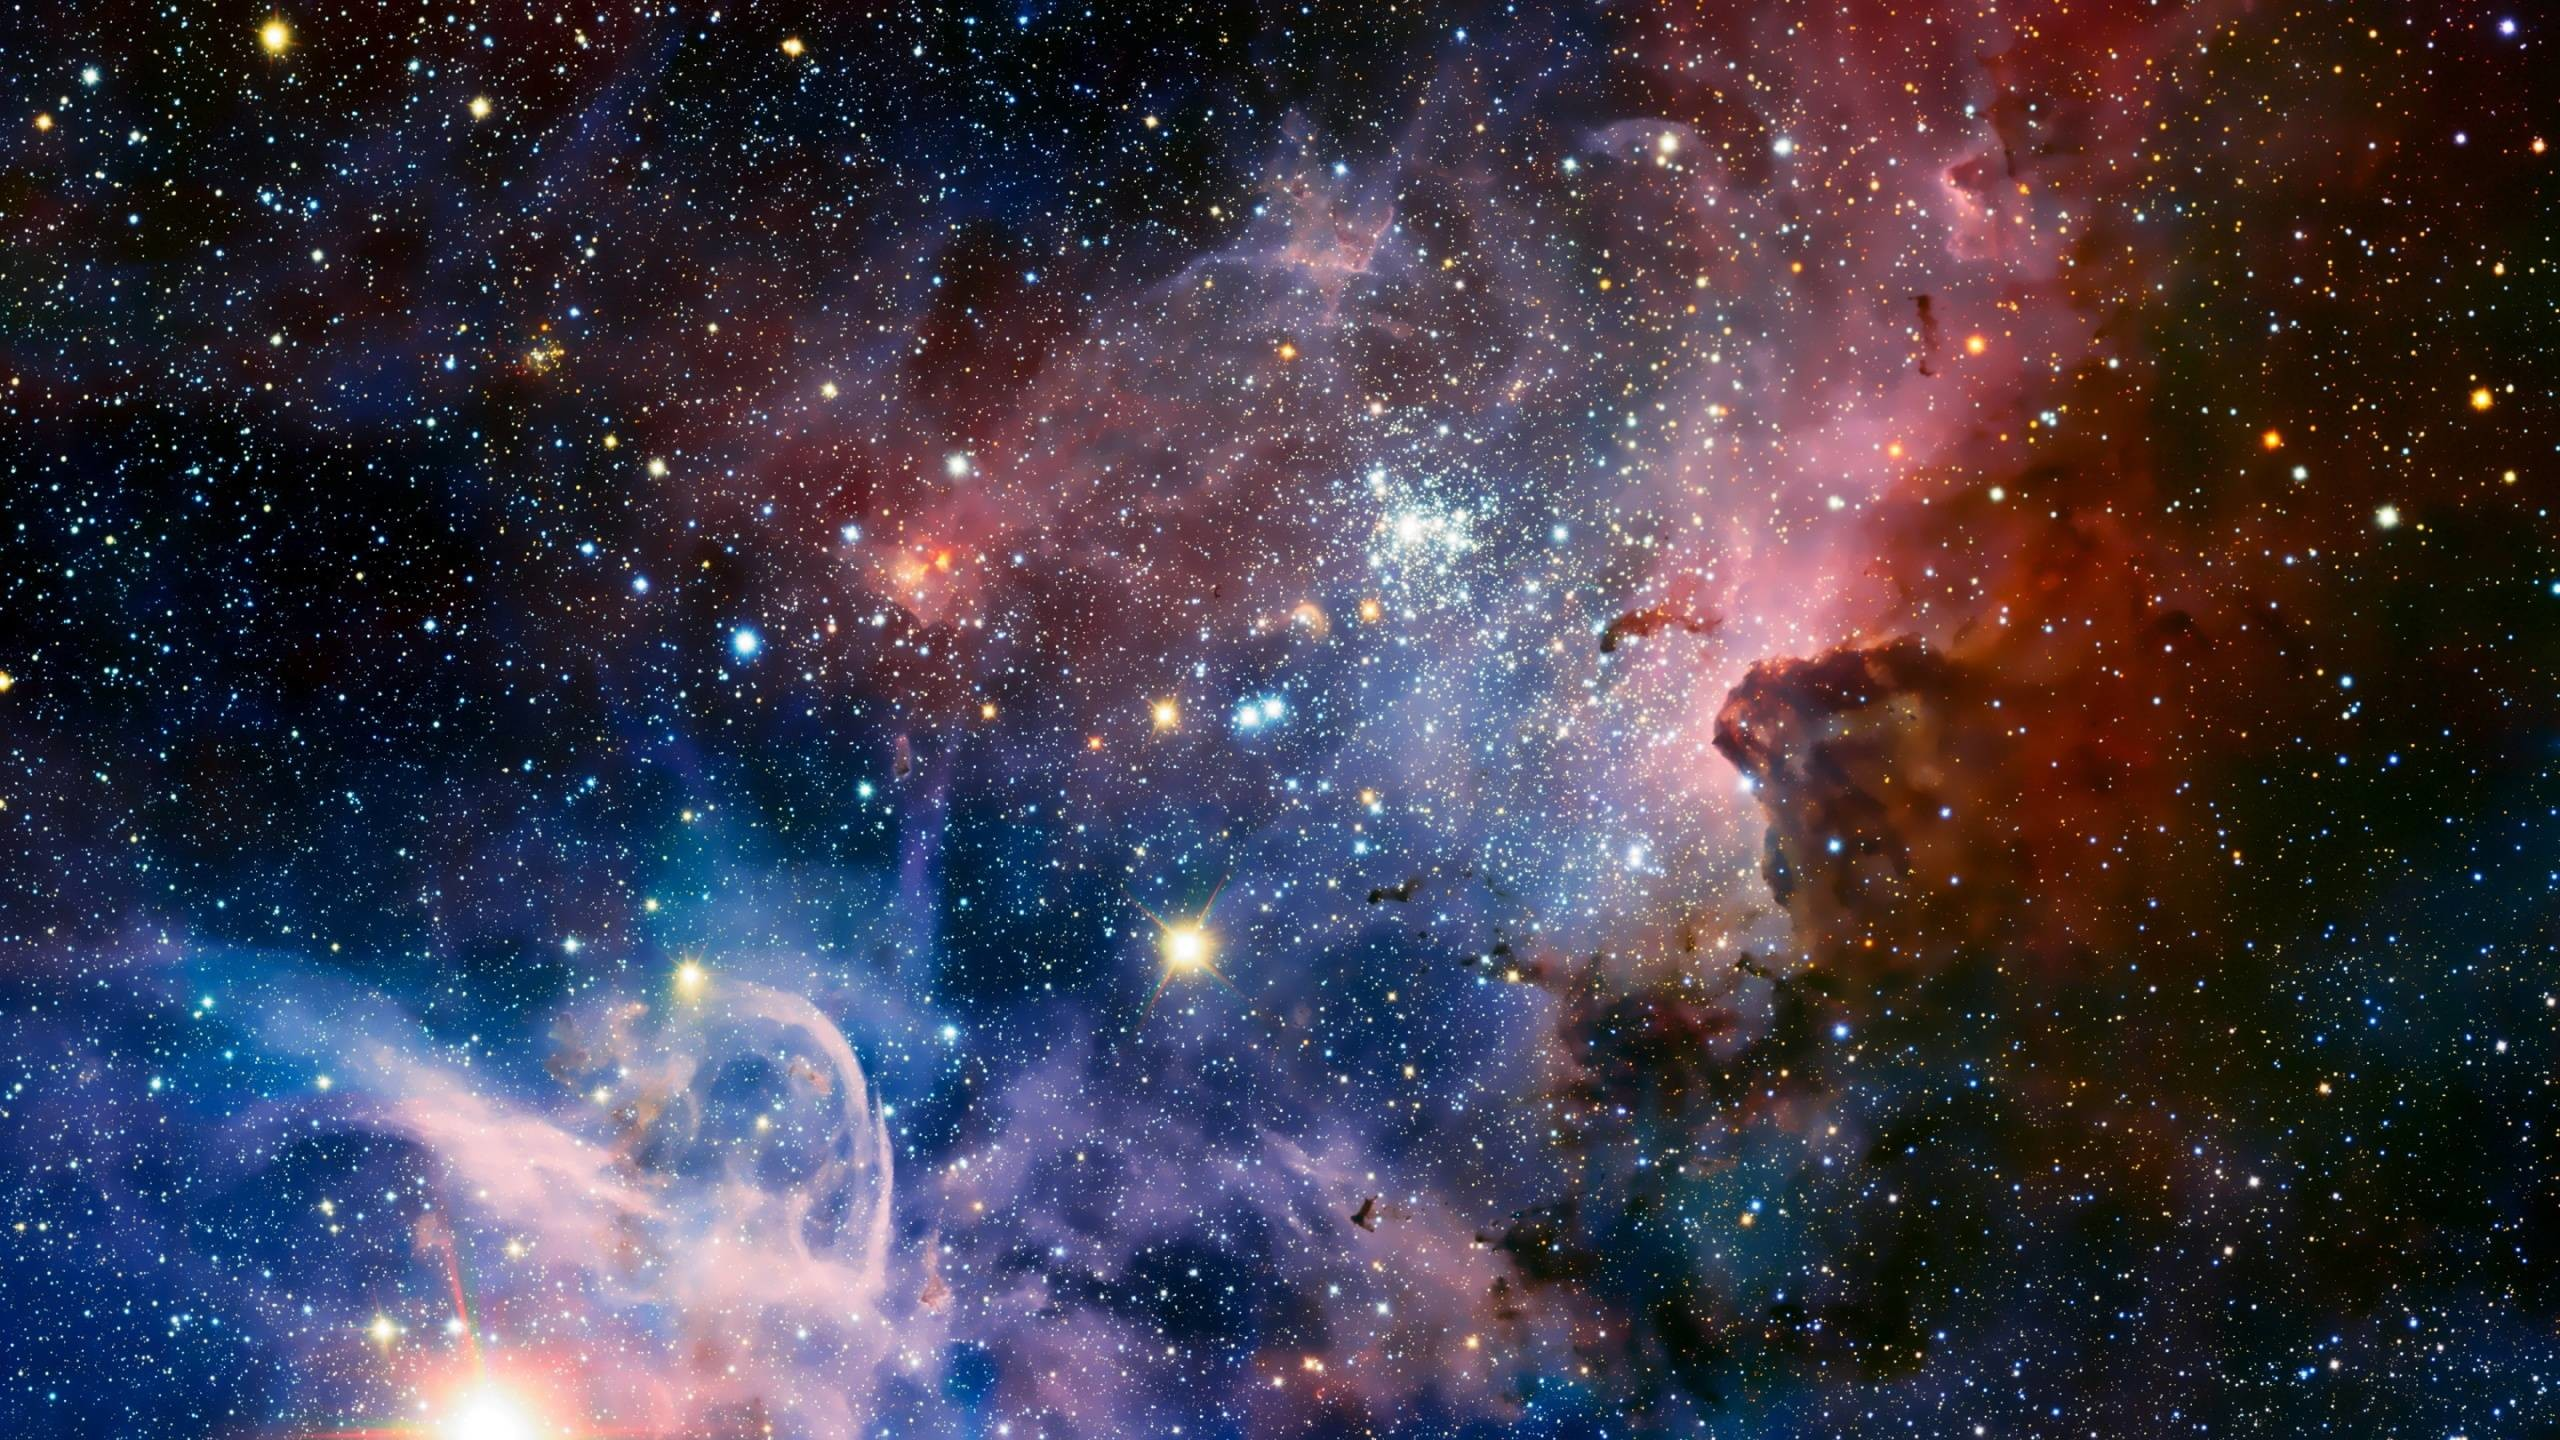 Wallpapers For > Cool Backgrounds Of Space With Stars